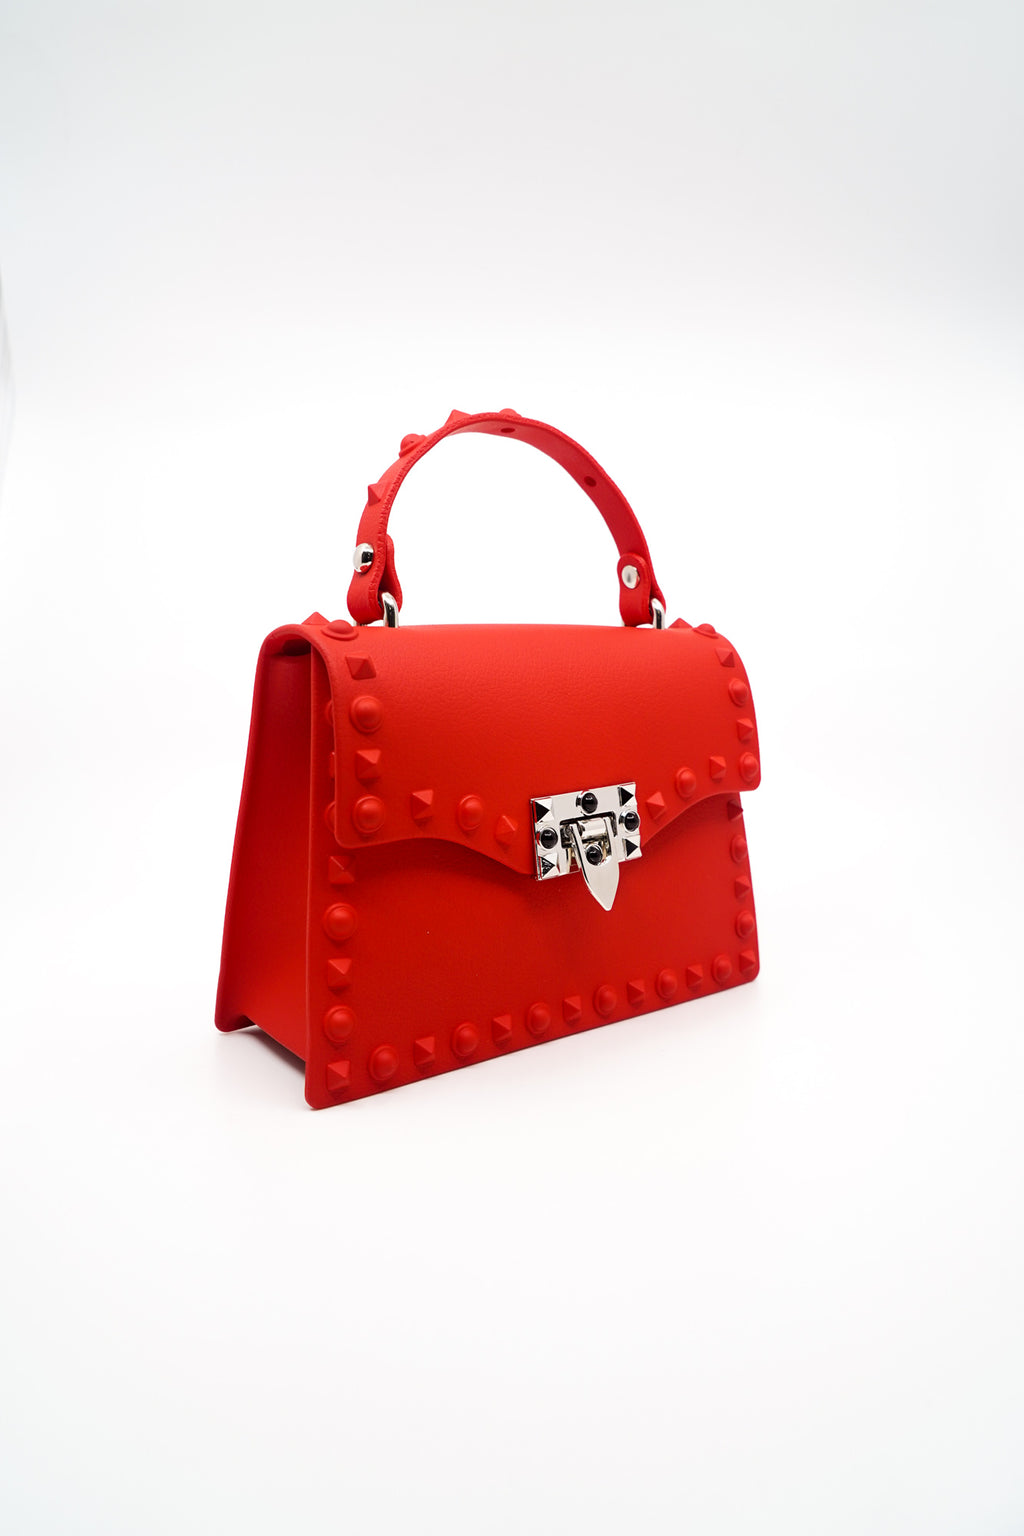 Rebel Studded Faux Leather Handbag in Red - Fashion House USA